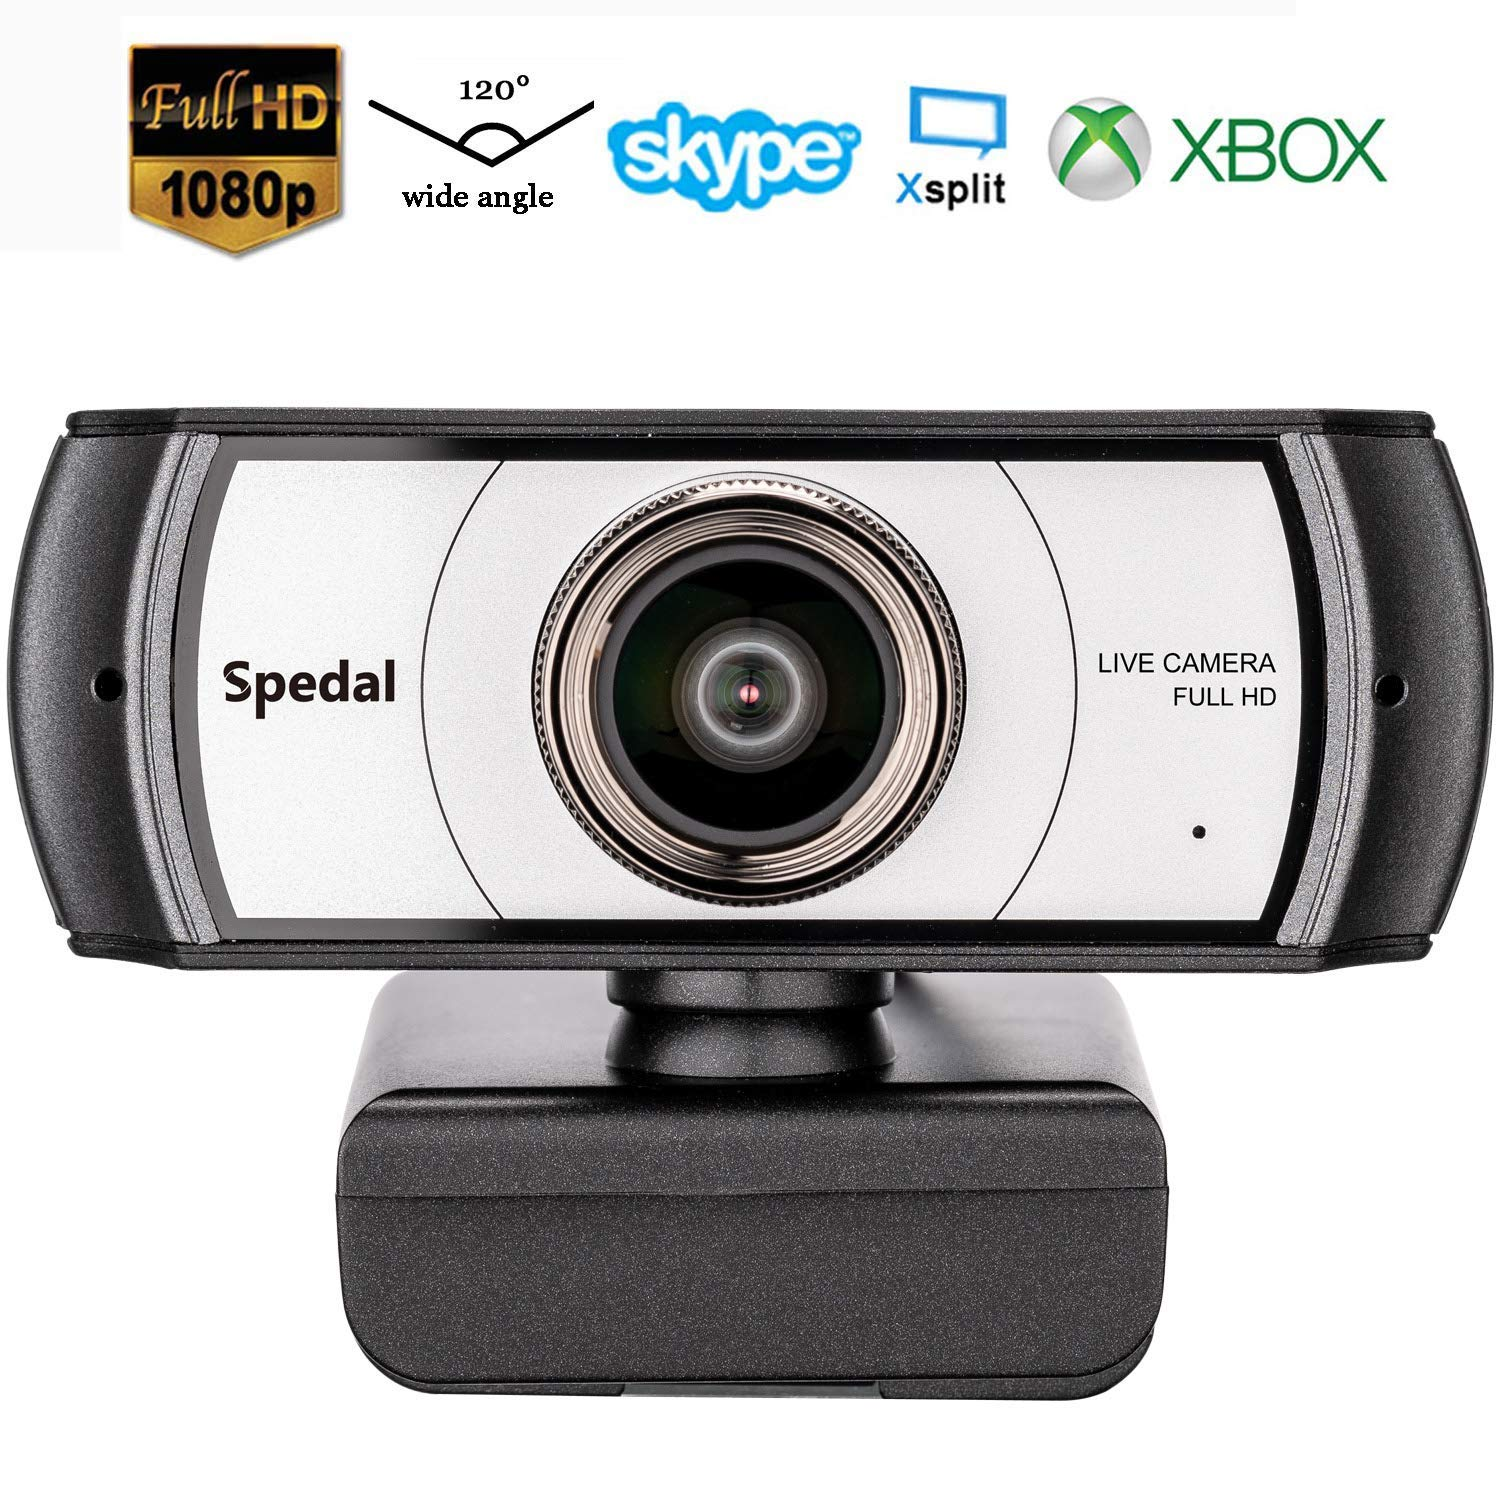 Wide Angle Webcam,120 Degree Large View Spedal 920 Pro Video Conference Camera, Full HD 1080P Live Streaming Web Cam with Built-in Microphone, USB Webcam for Mac, PC, Laptop and Desktop by Spedal